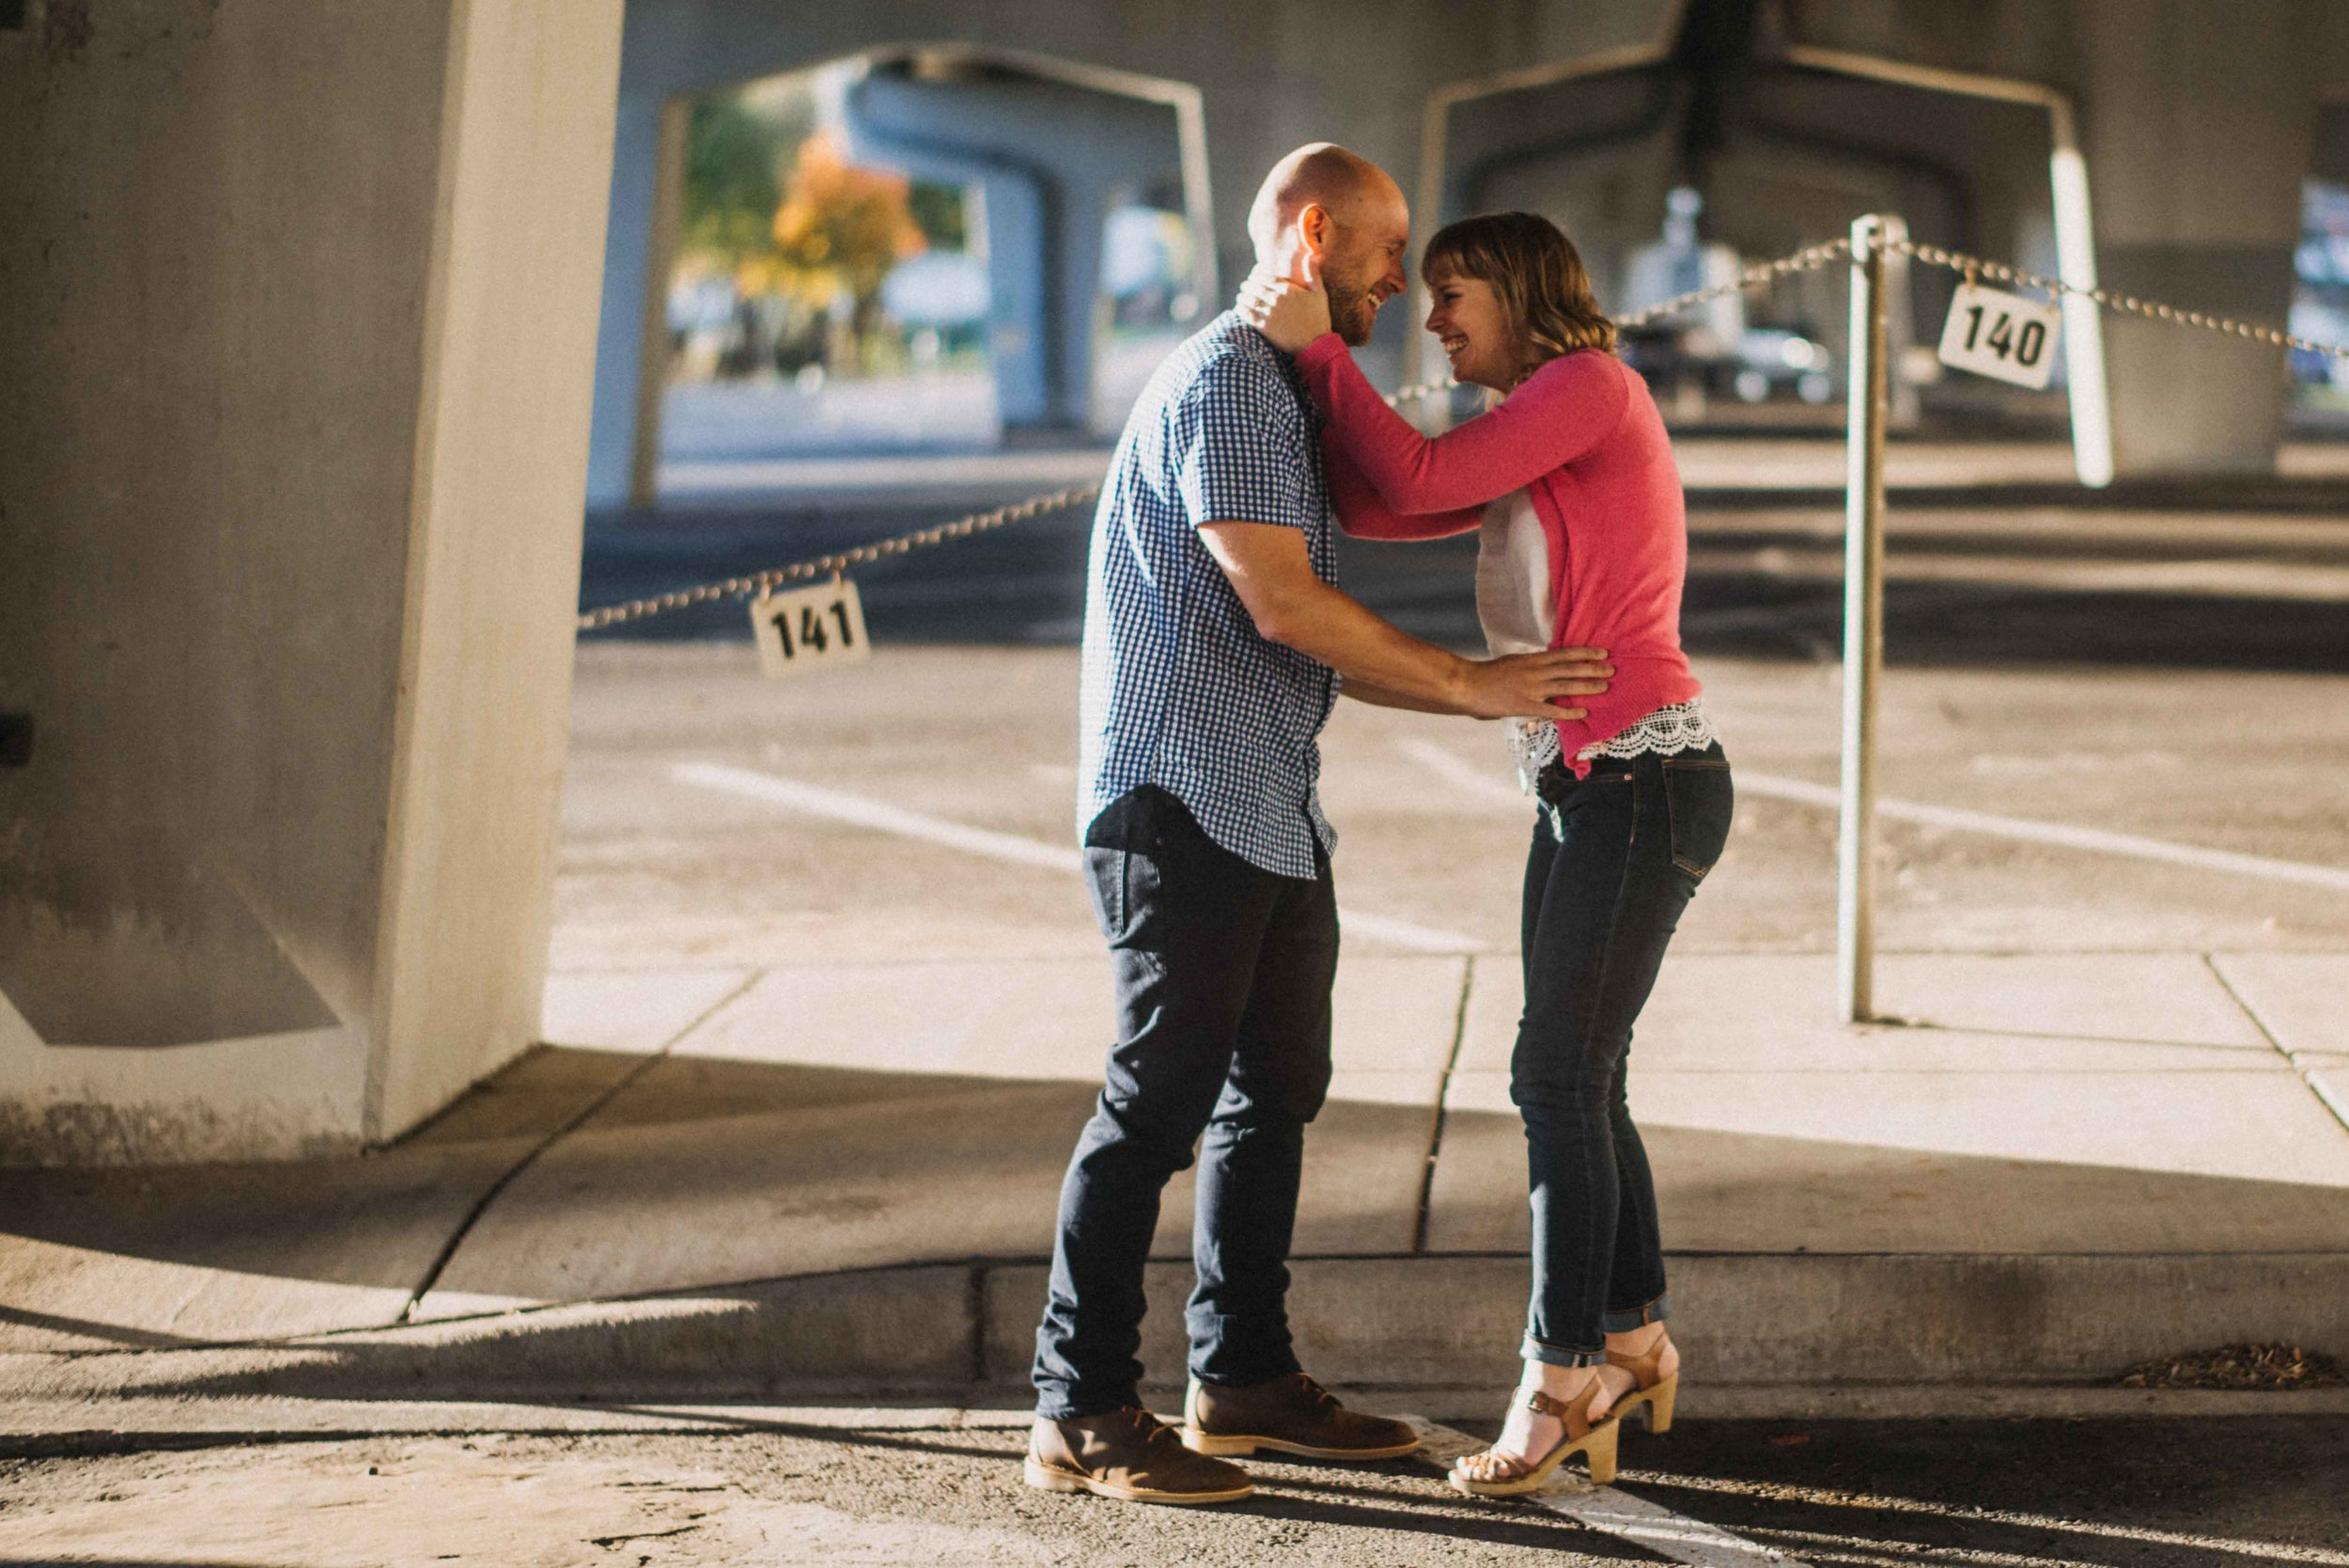 modist_brewing_minneapolis_minnesota_wedding_photography_engagement_session (12 of 32).JPG